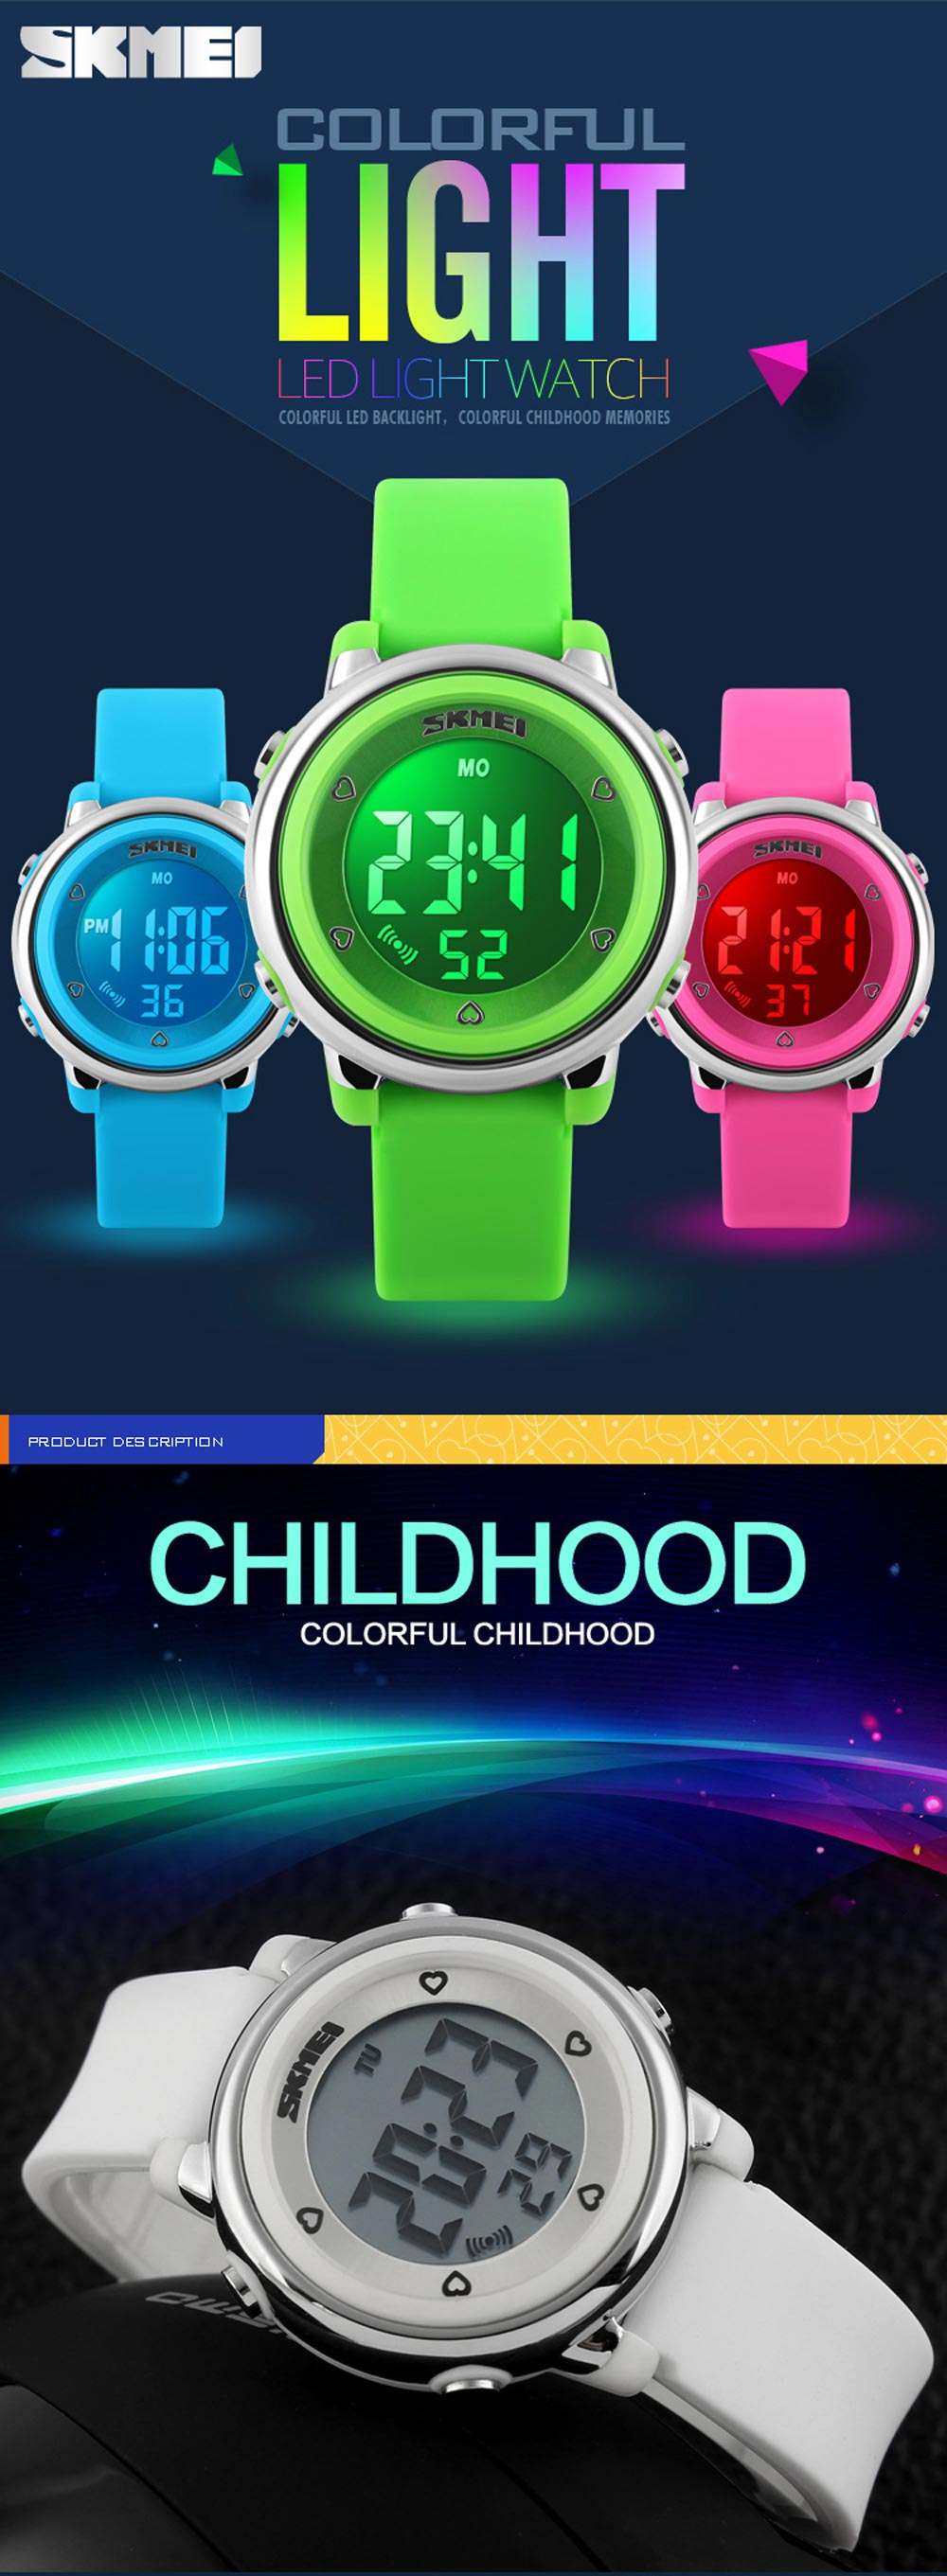 SKMEI 1100 Children LED Digital Watch Silicone Wristband Sports Watches